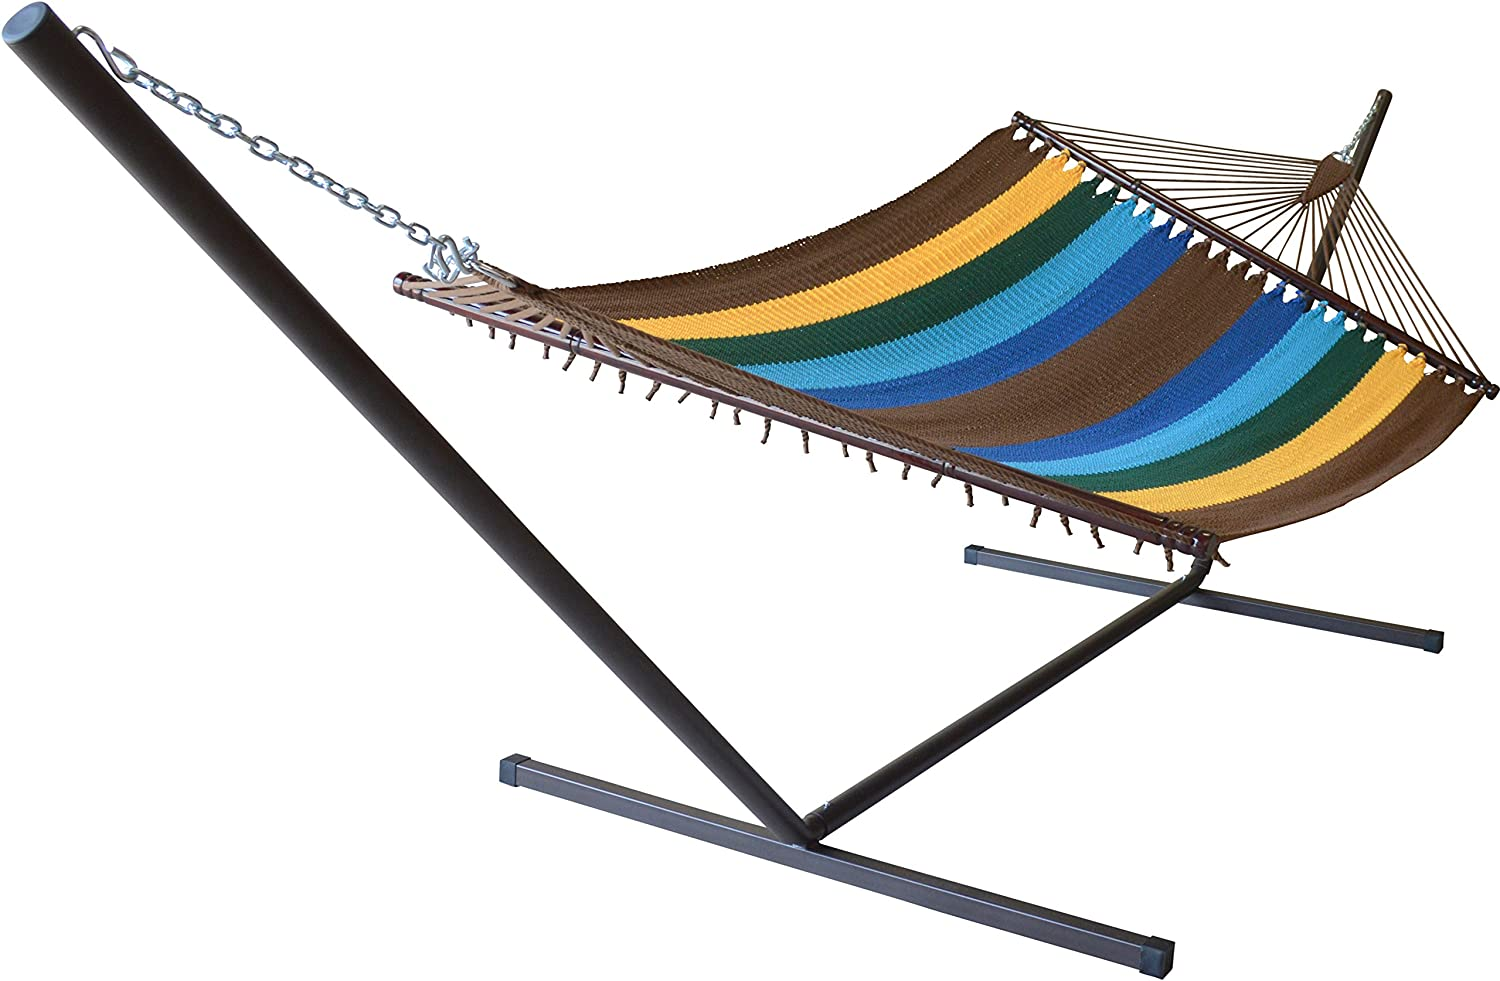 Caribbean Hammocks Jumbo Hammock and 15 ft Tribeam Stand - Multi Color Yellow